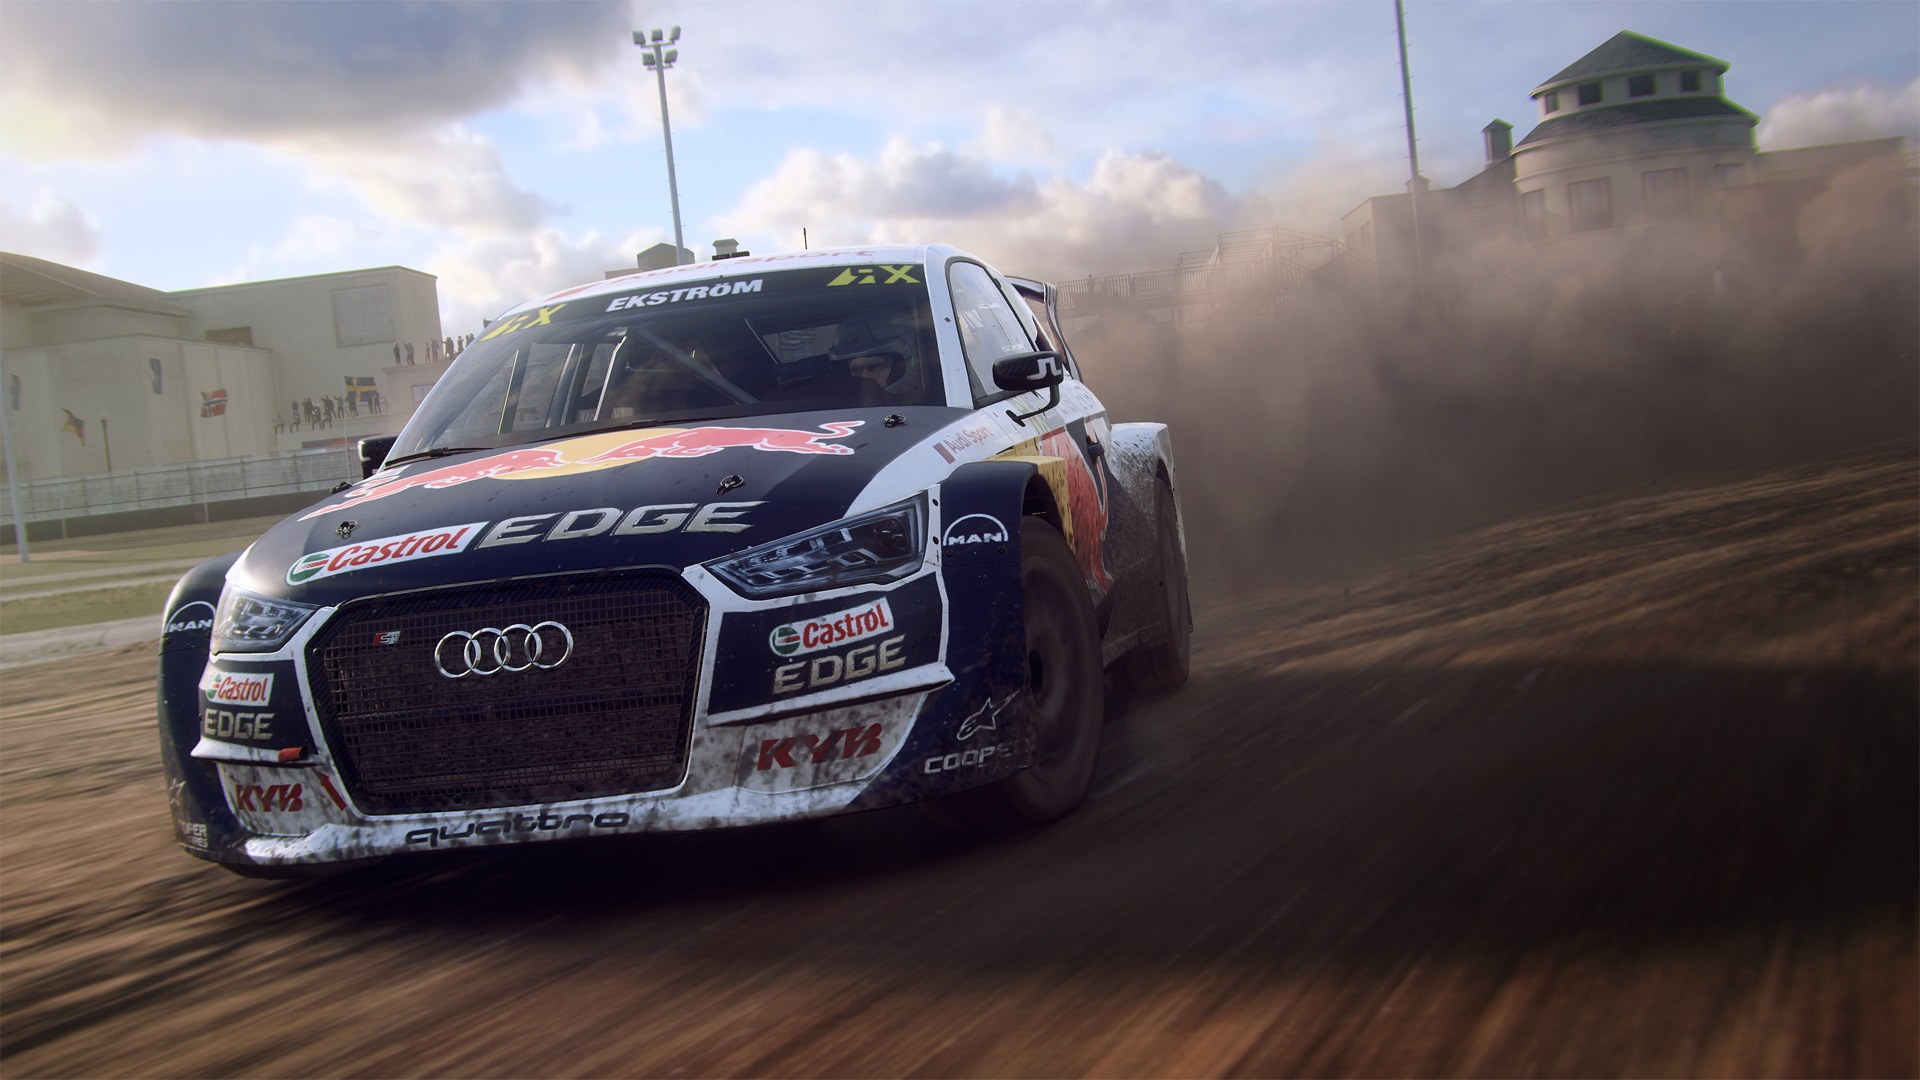 DiRT Rally 2.0 (PS4) - experienced drivers only